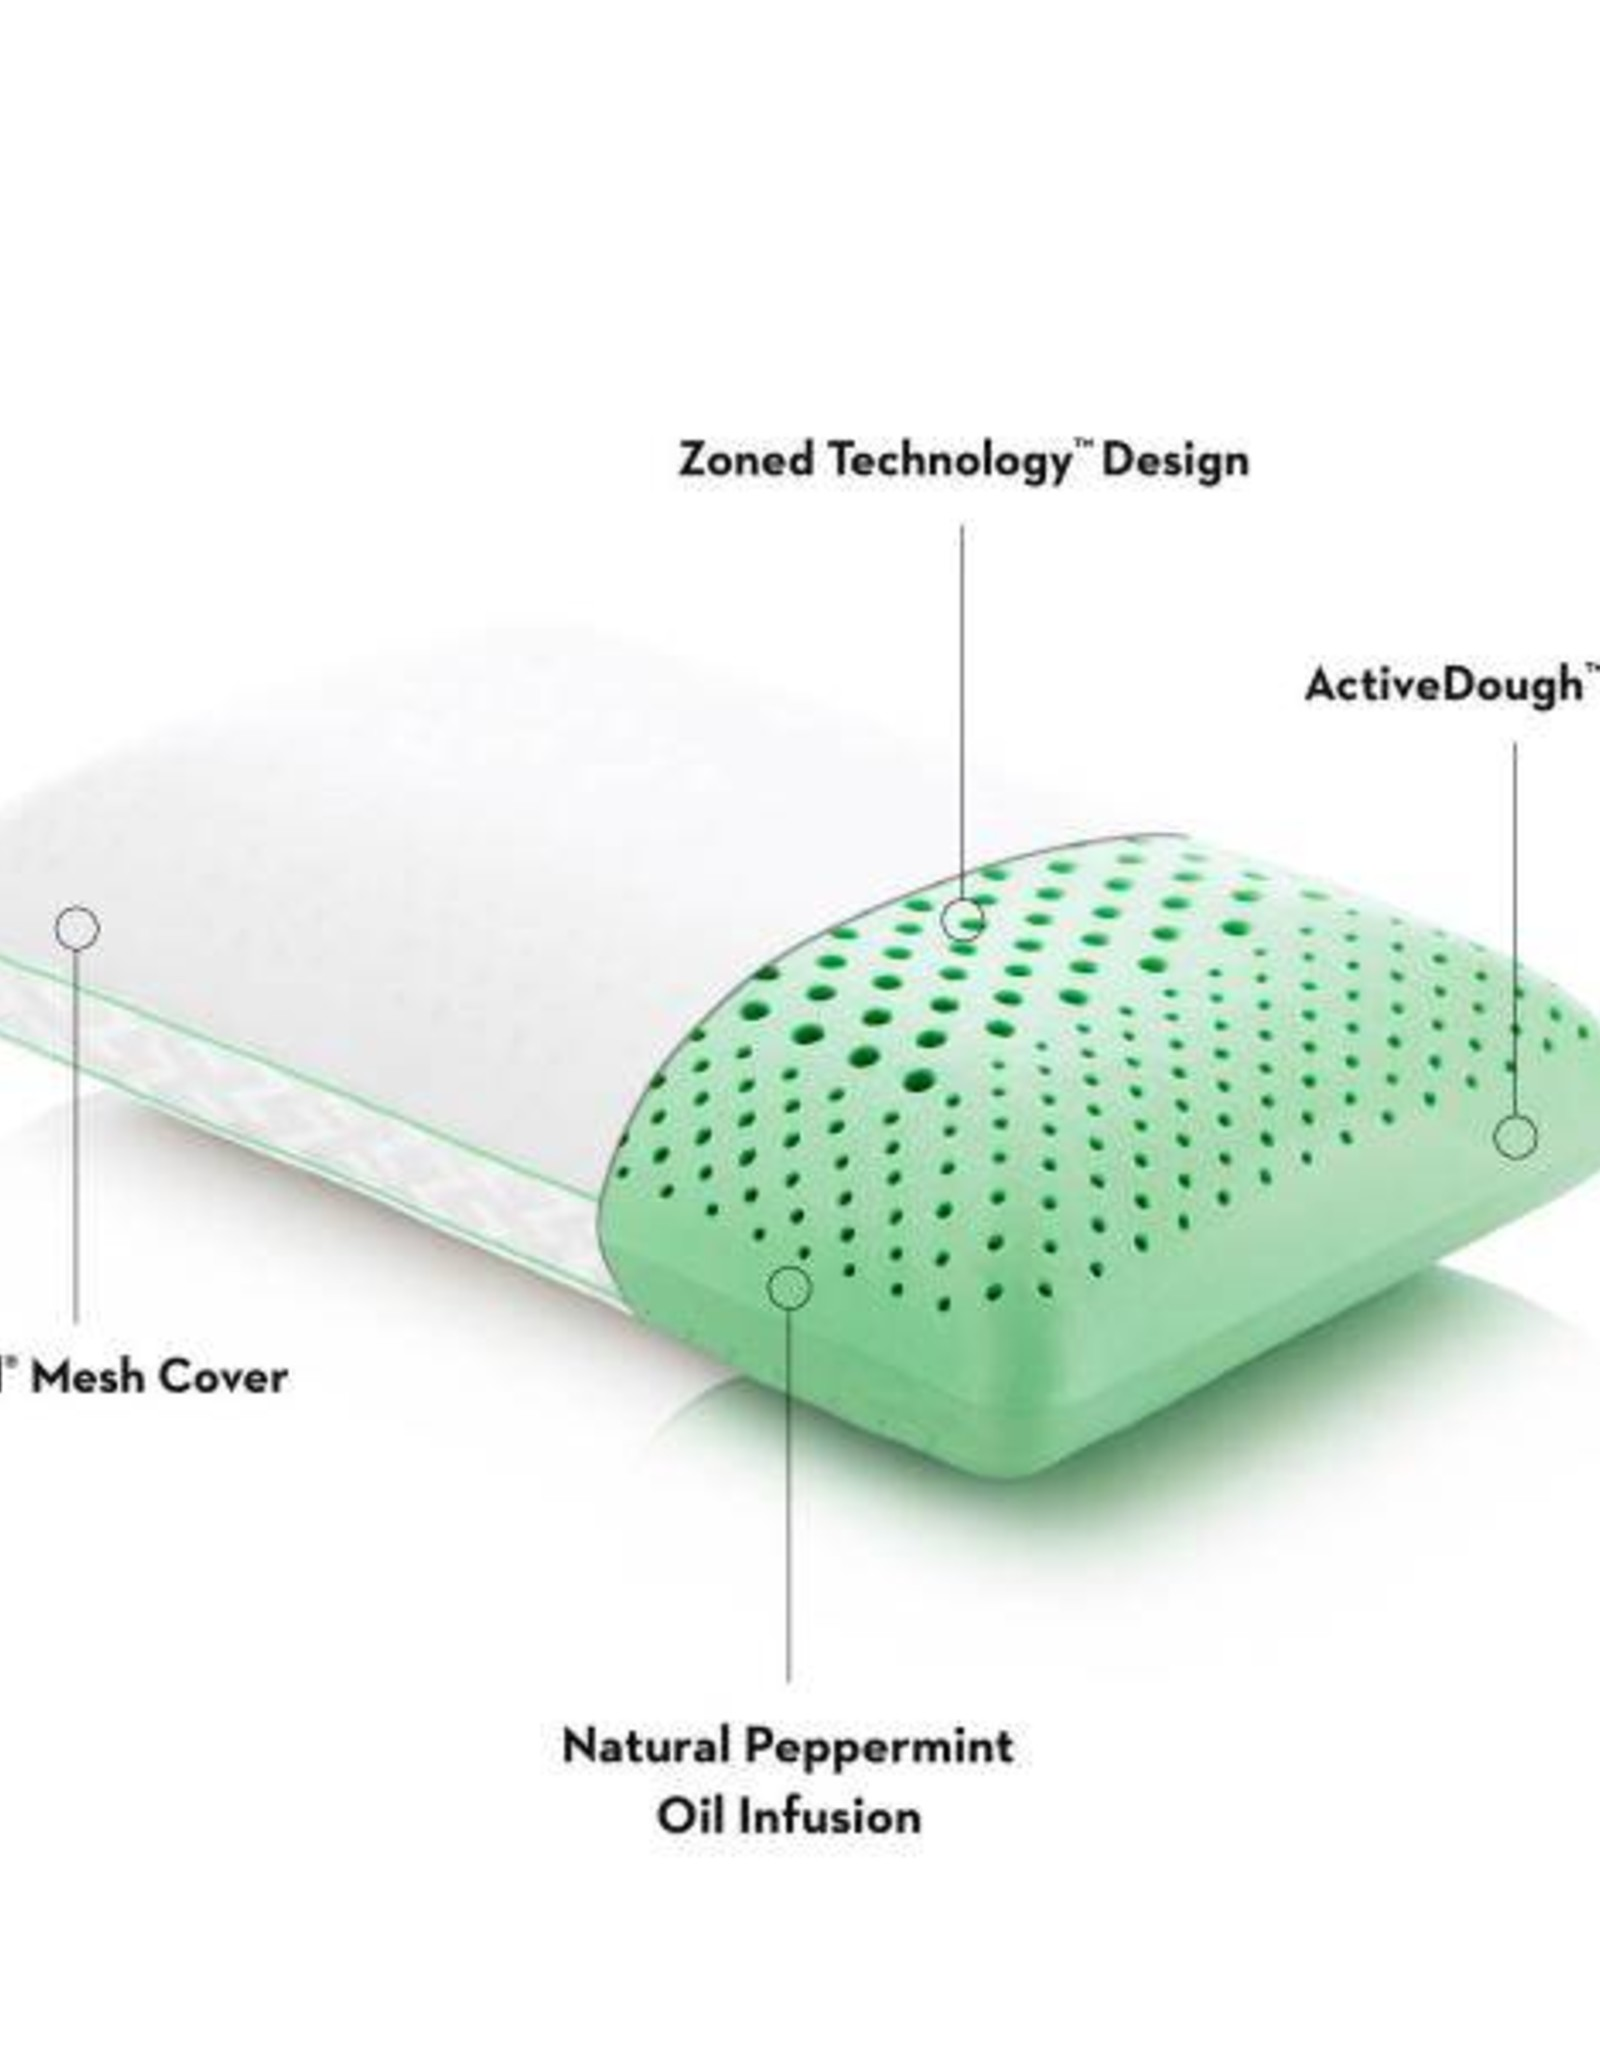 Malouf Z Zoned ActiveDough Peppermint Pillow w/ Aromatherapy Spray - Mid Loft